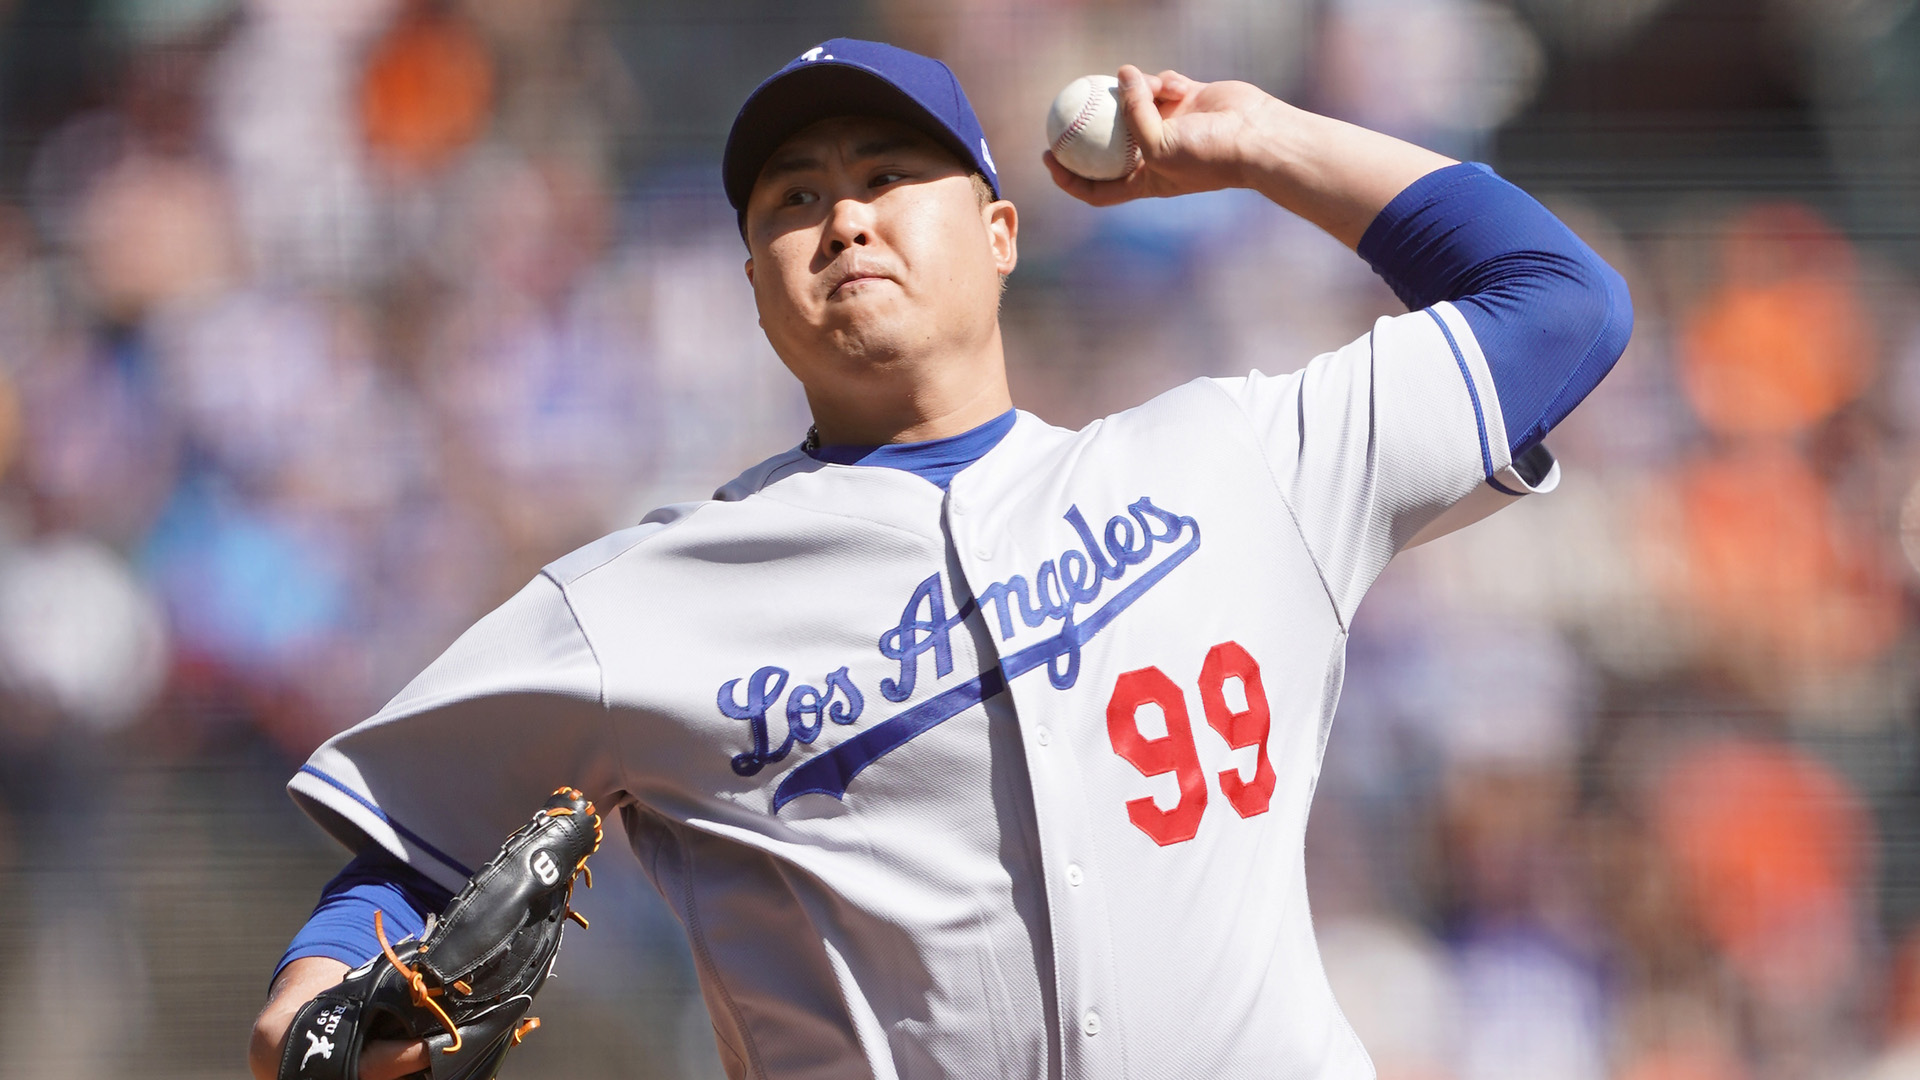 Hyun-Jin Ryu #99 of the Los Angeles Dodgers pitches against the San Francisco Giants at Oracle Park on September 28, 2019 in San Francisco, California. (Credit: Thearon W. Henderson/Getty Images)